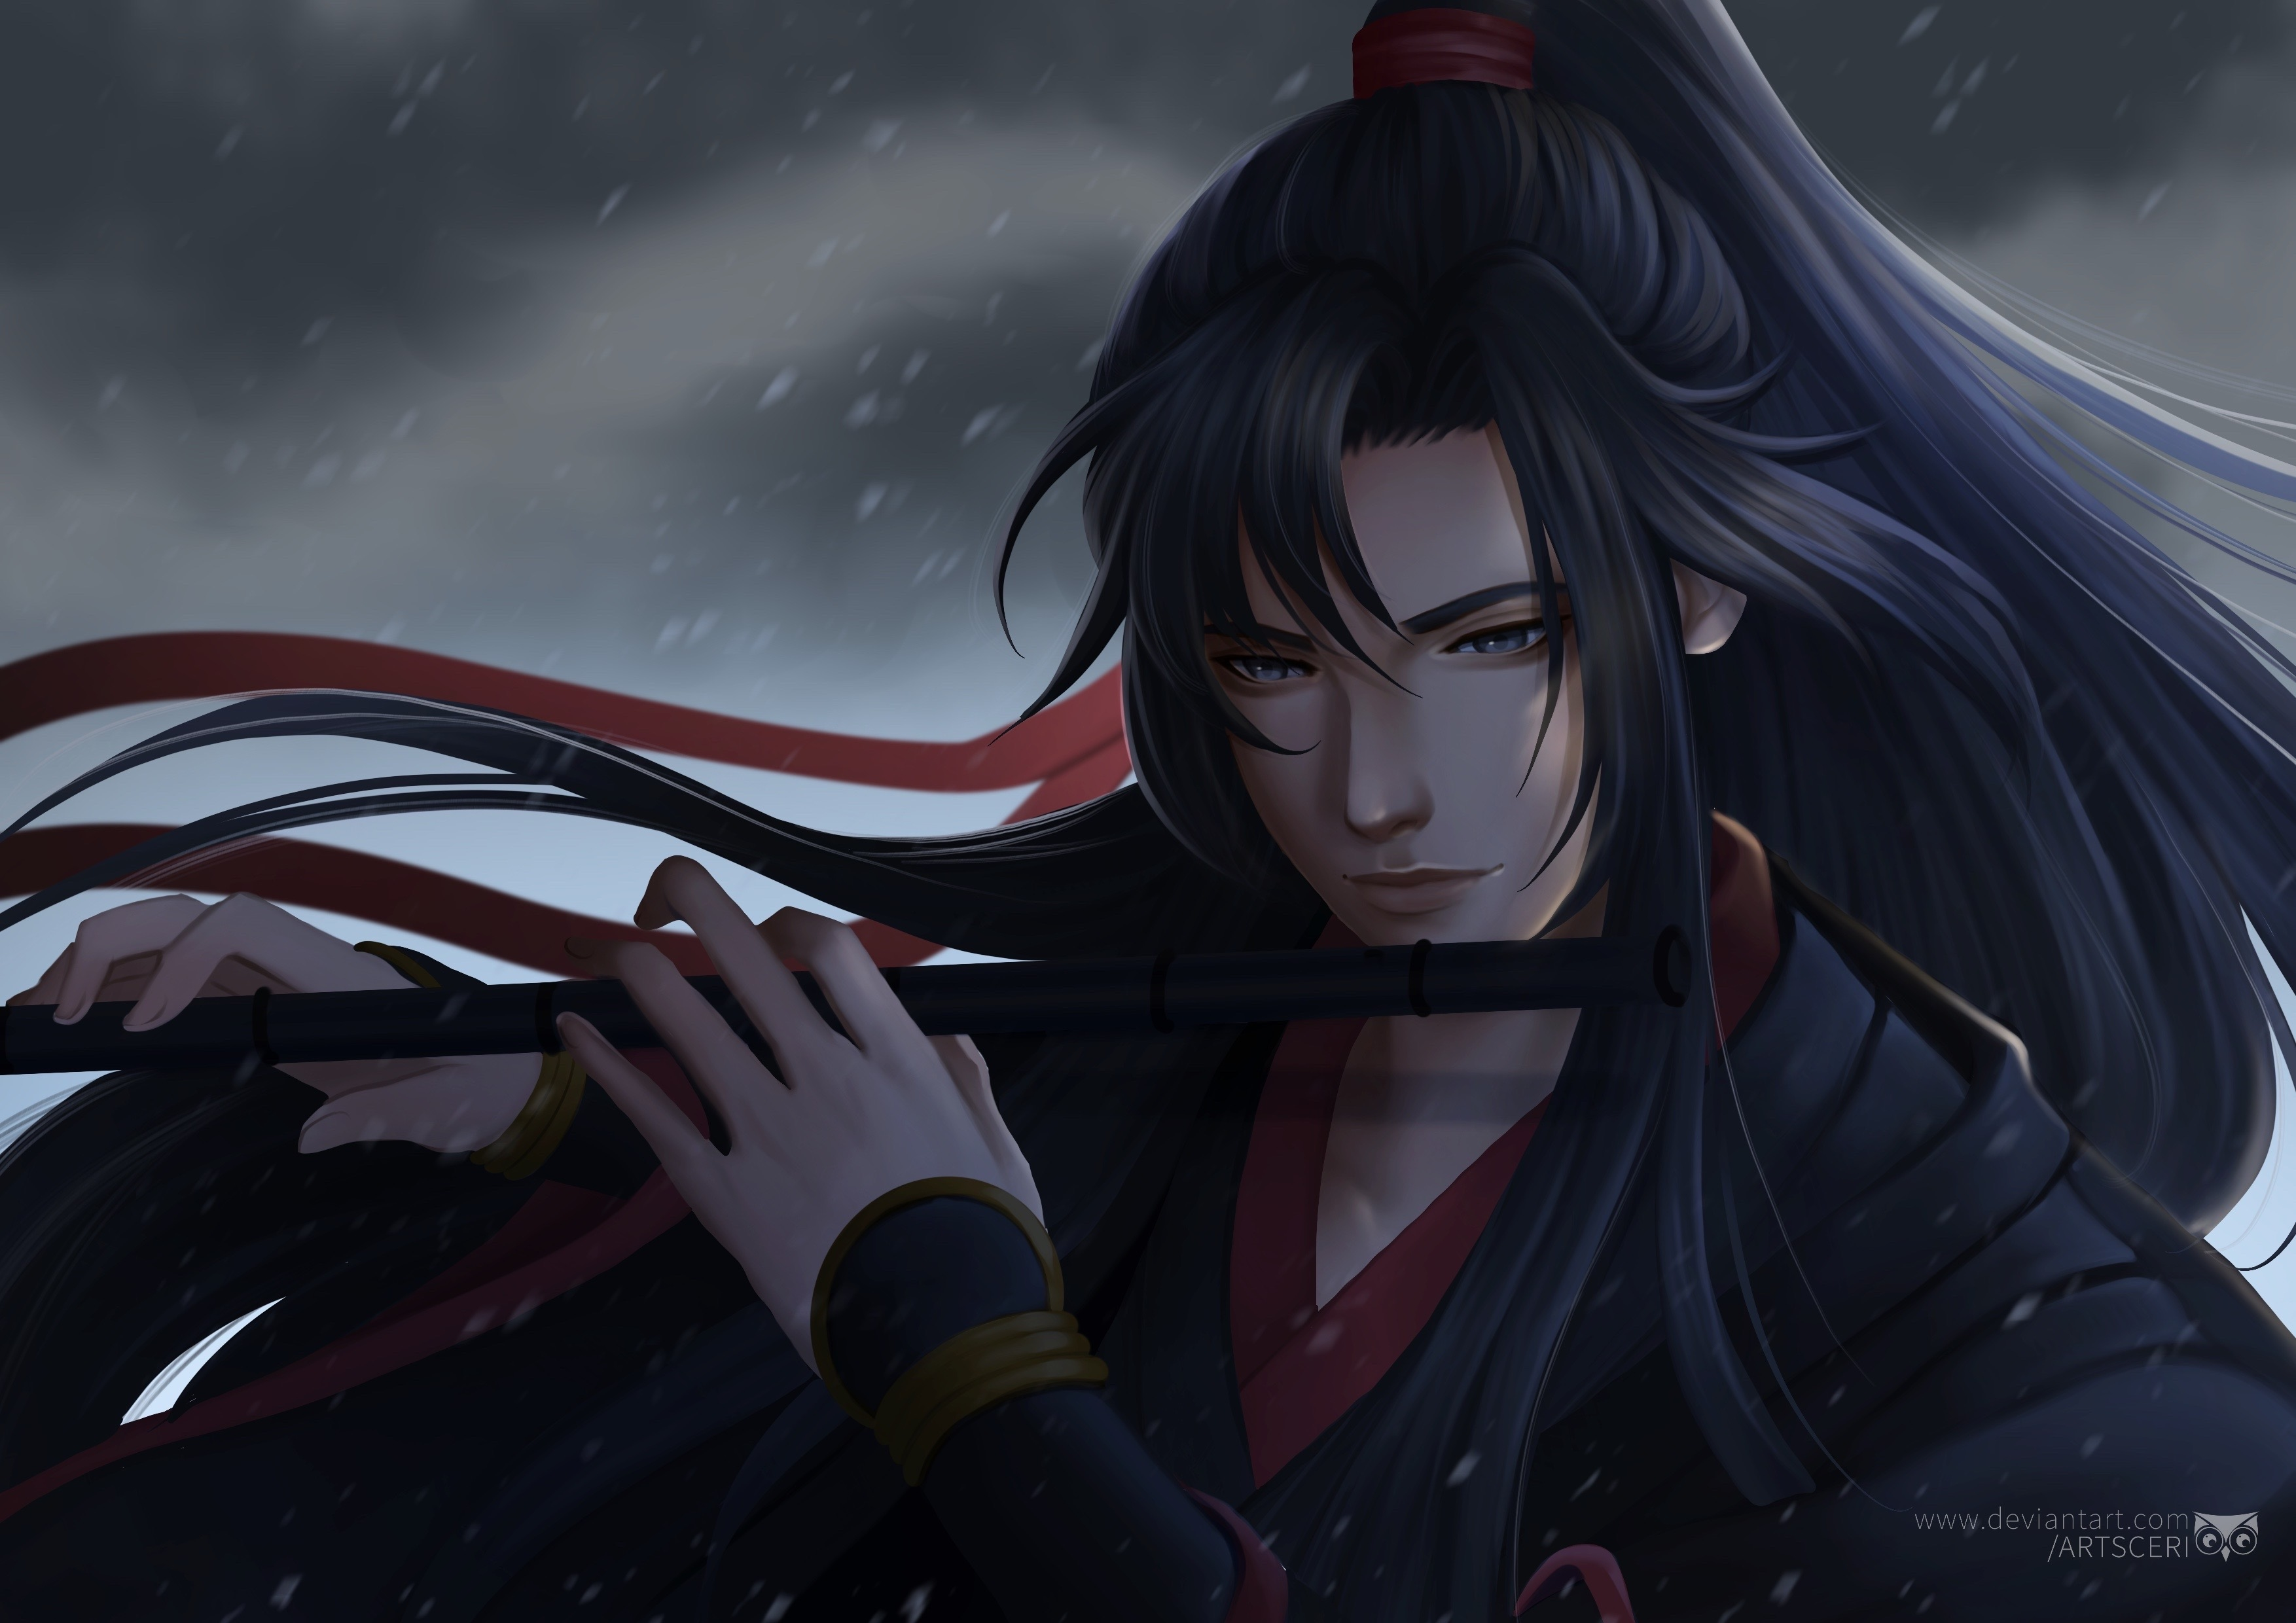 Wei Wuxian Anime Wallpaper Hd Anime 4k Wallpapers Images